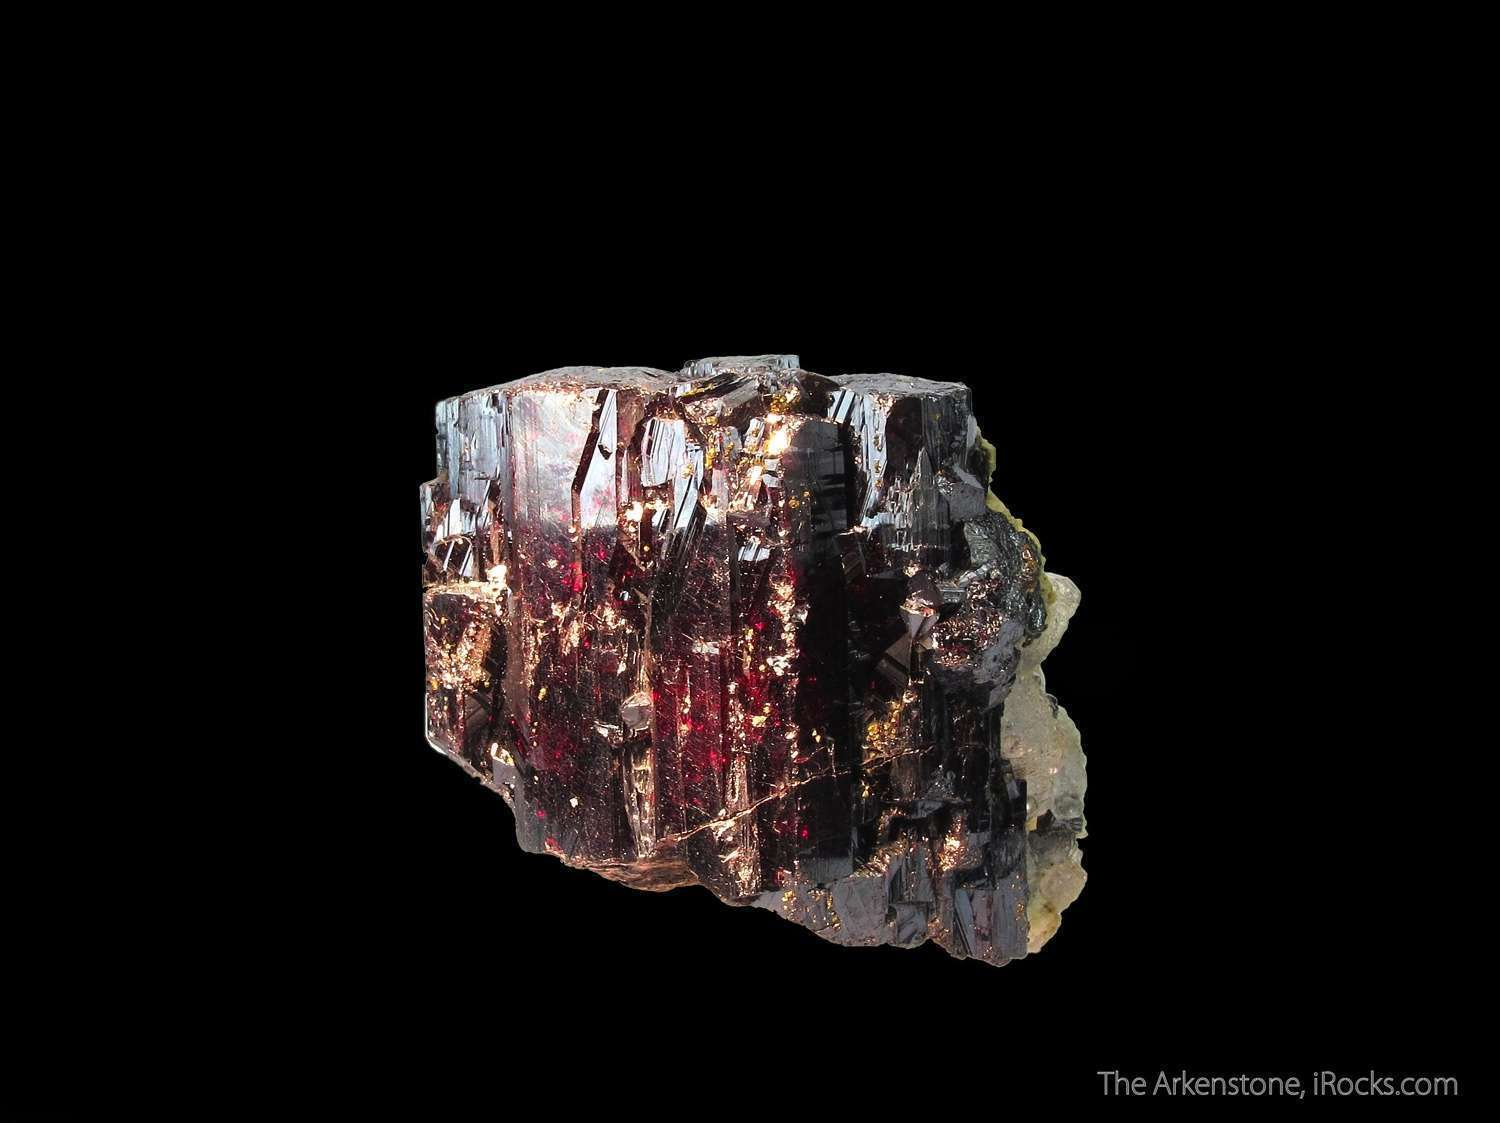 This important crystal species sheer size thickness The luster